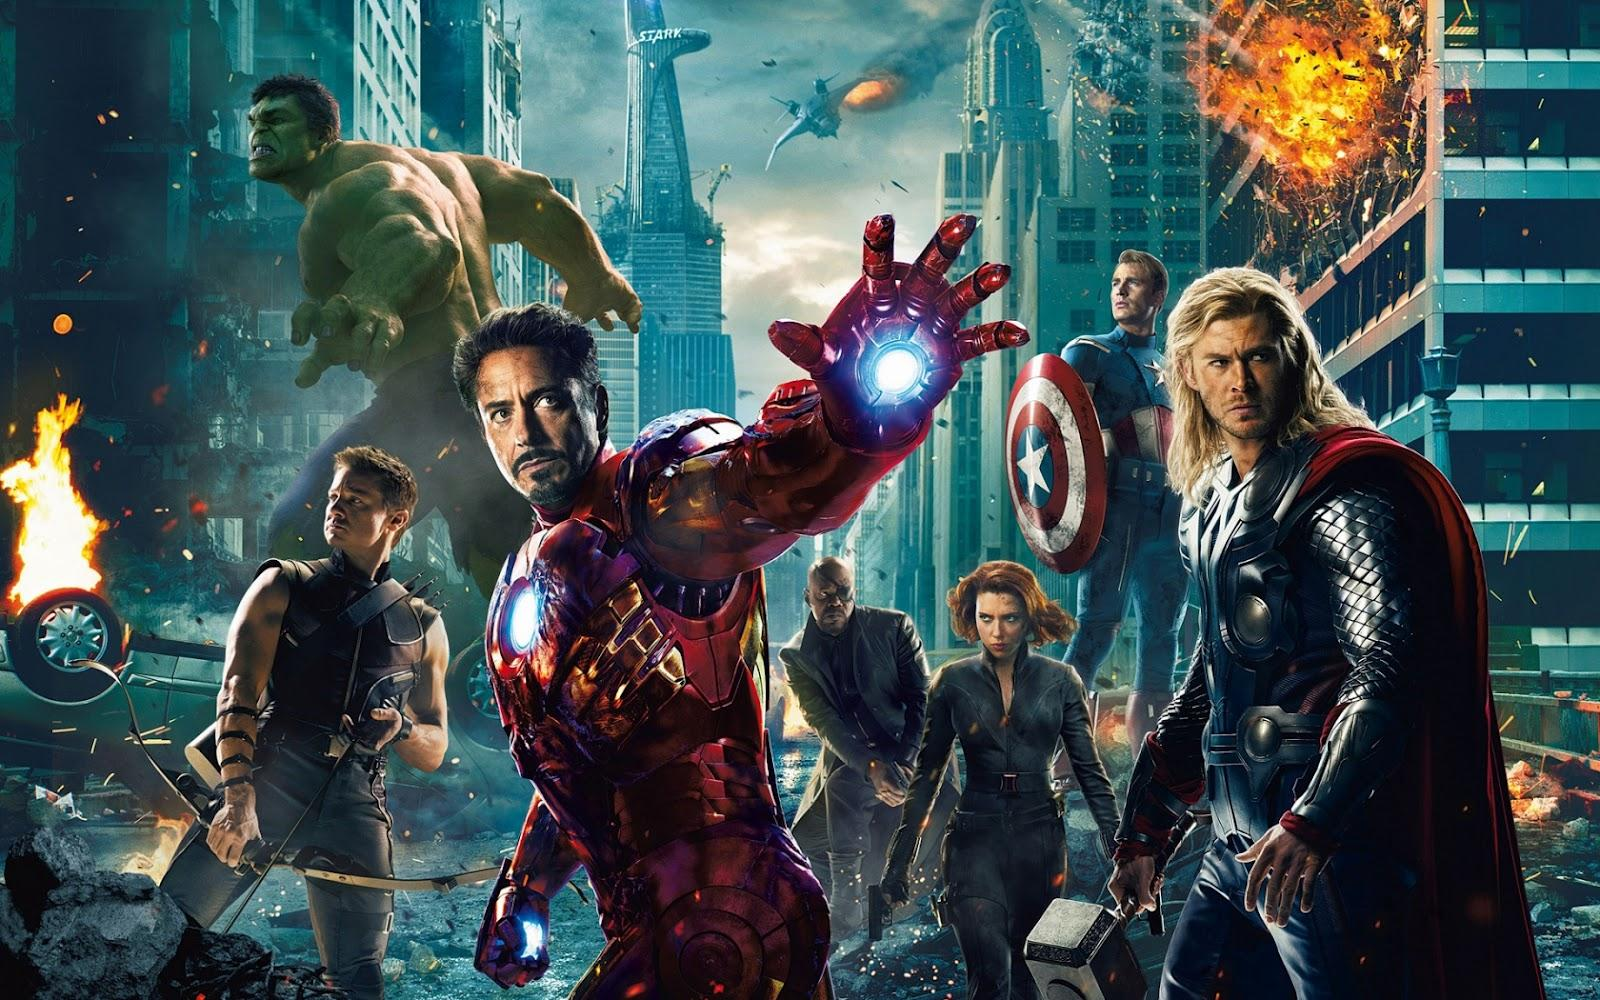 The Avengers. It's what we call ourselves. Sorta like a team. Earth's Mightiest Heroes type thing.